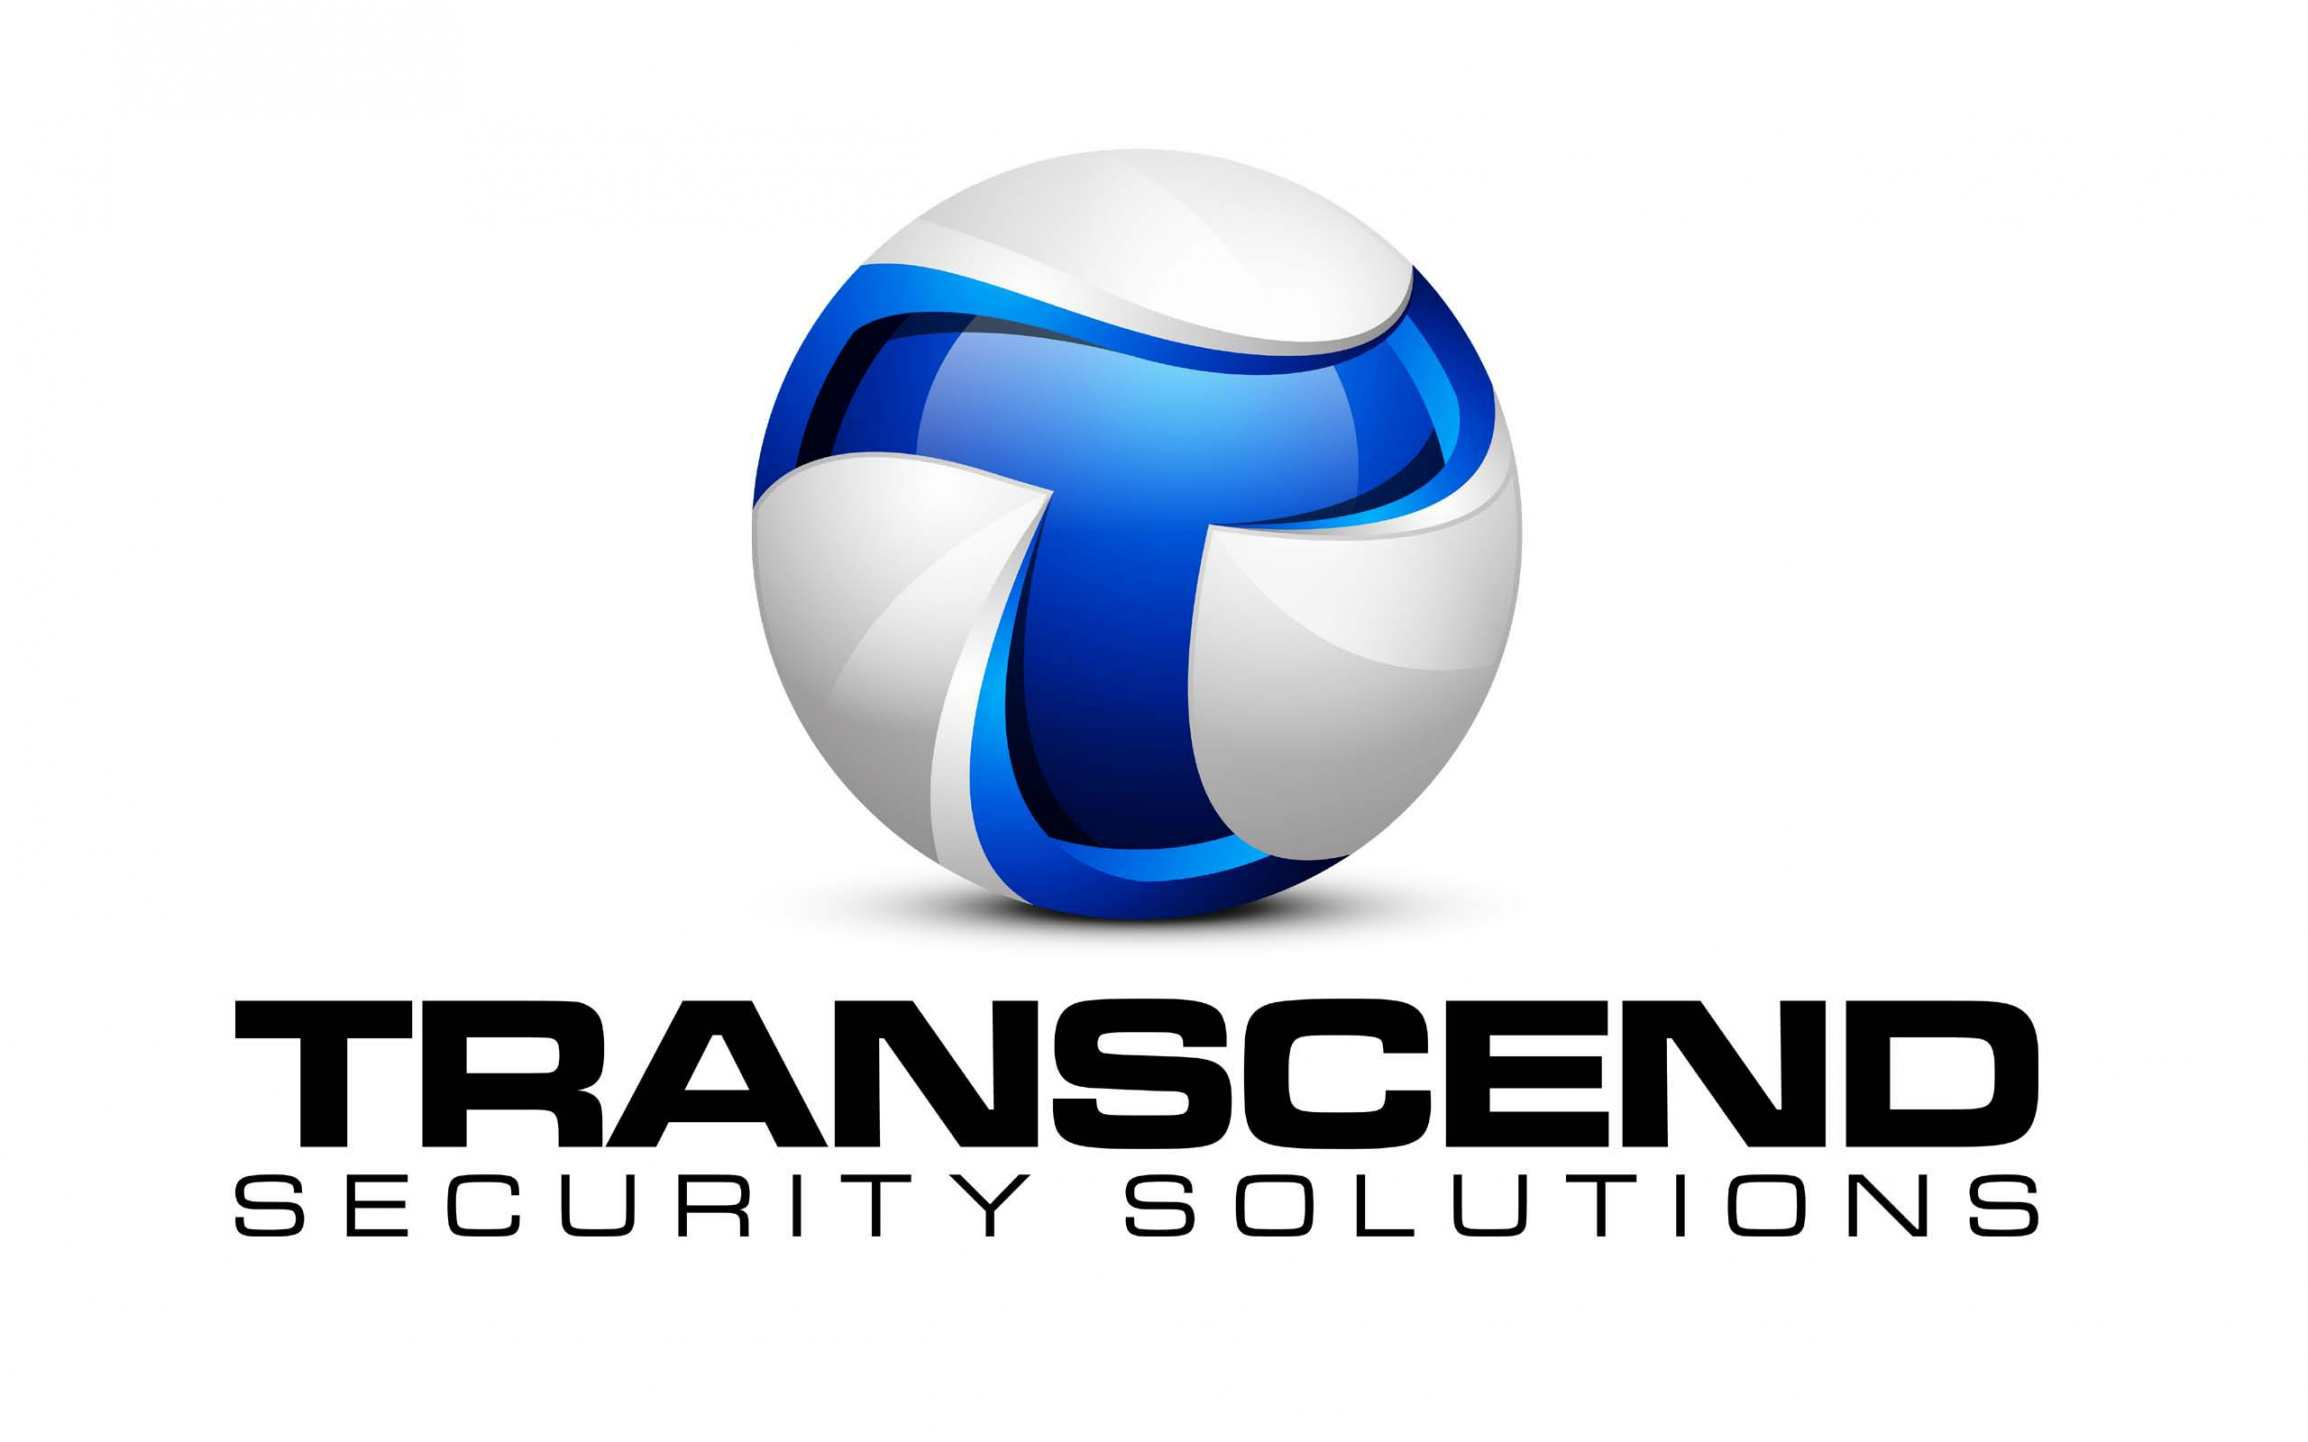 Transcend Security Solutions